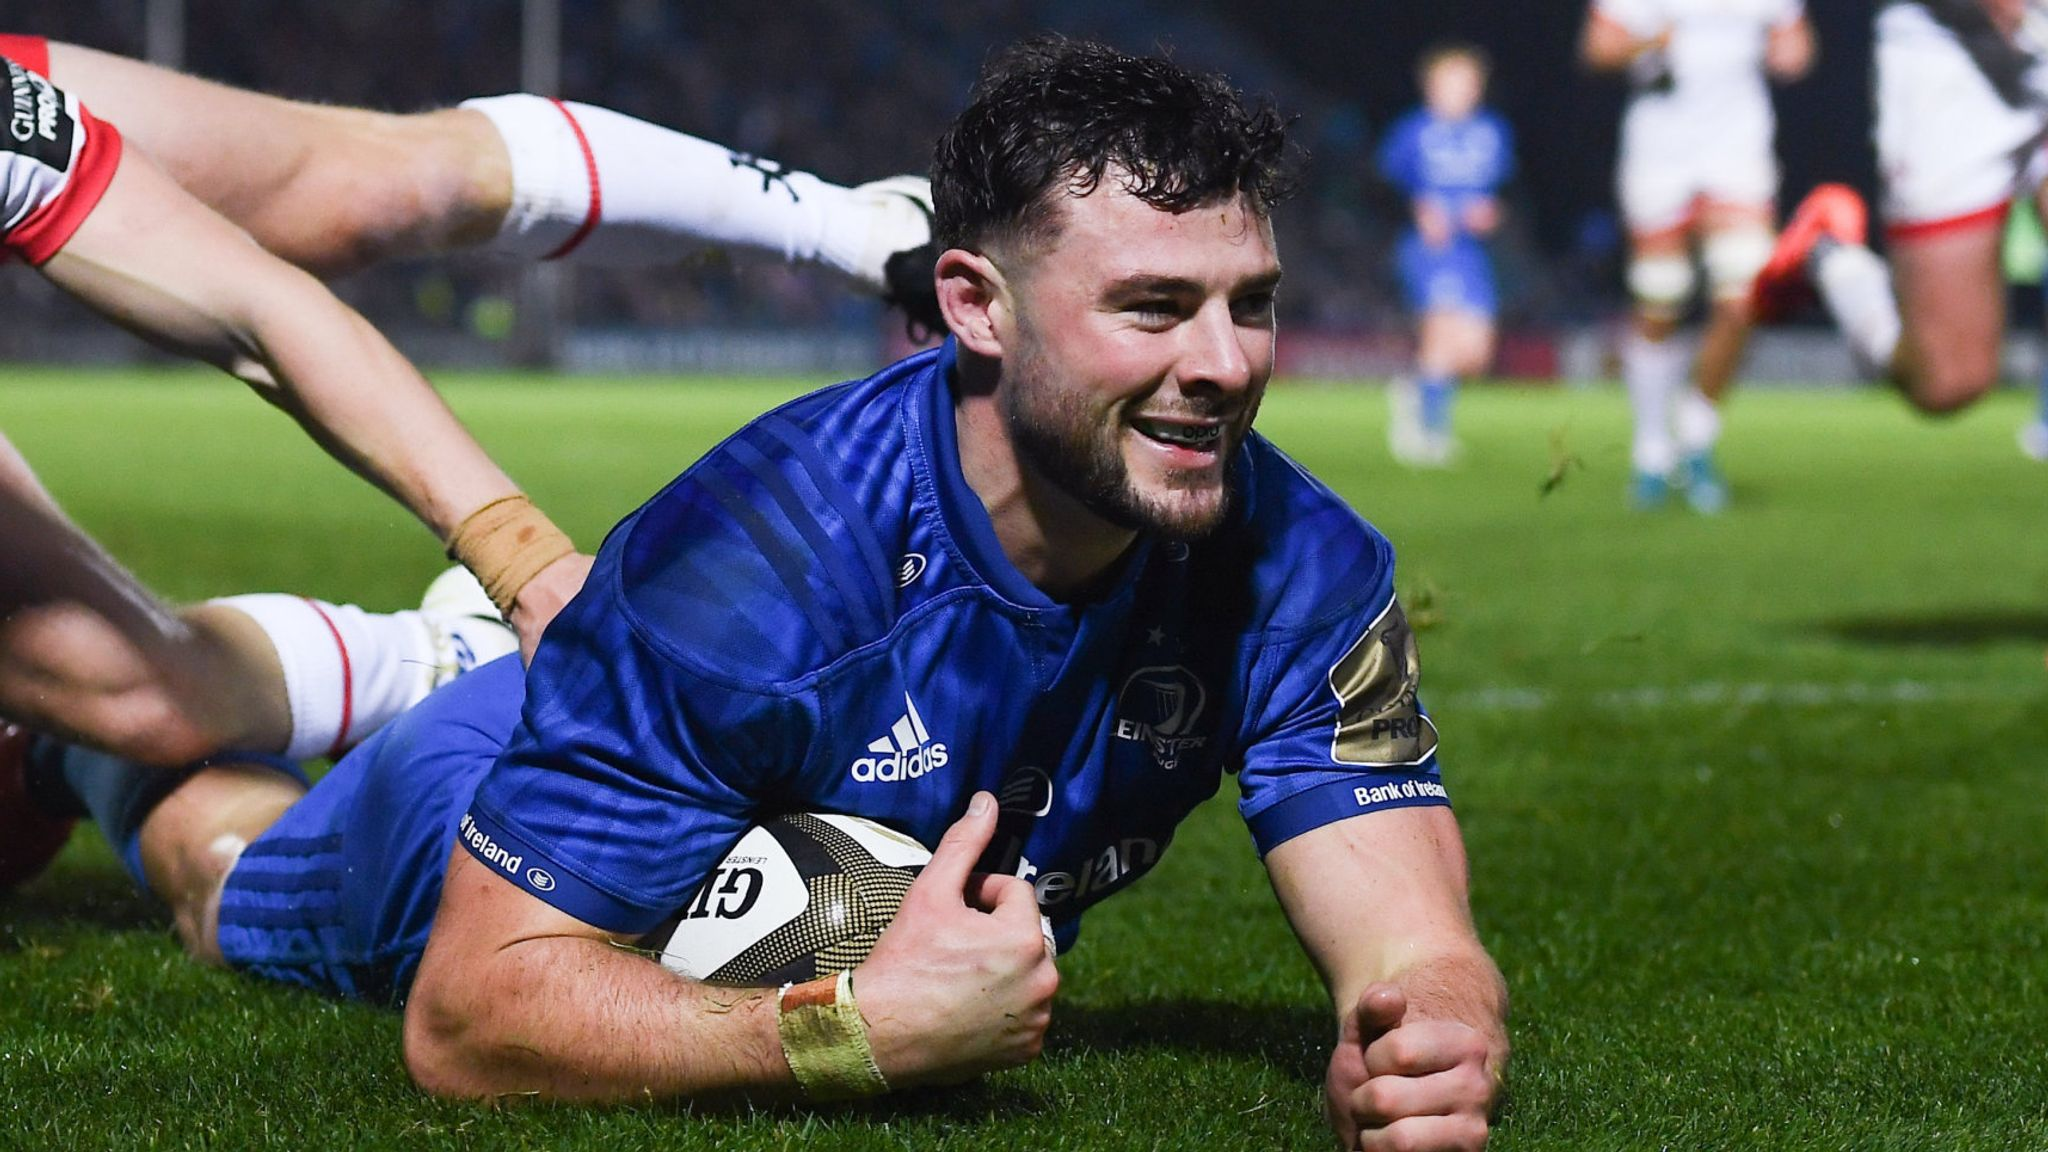 Guinness PRO14's weekend wrap: Leinster, Munster, Dragons, Glasgow, Cardiff Blues and Benetton win derbies